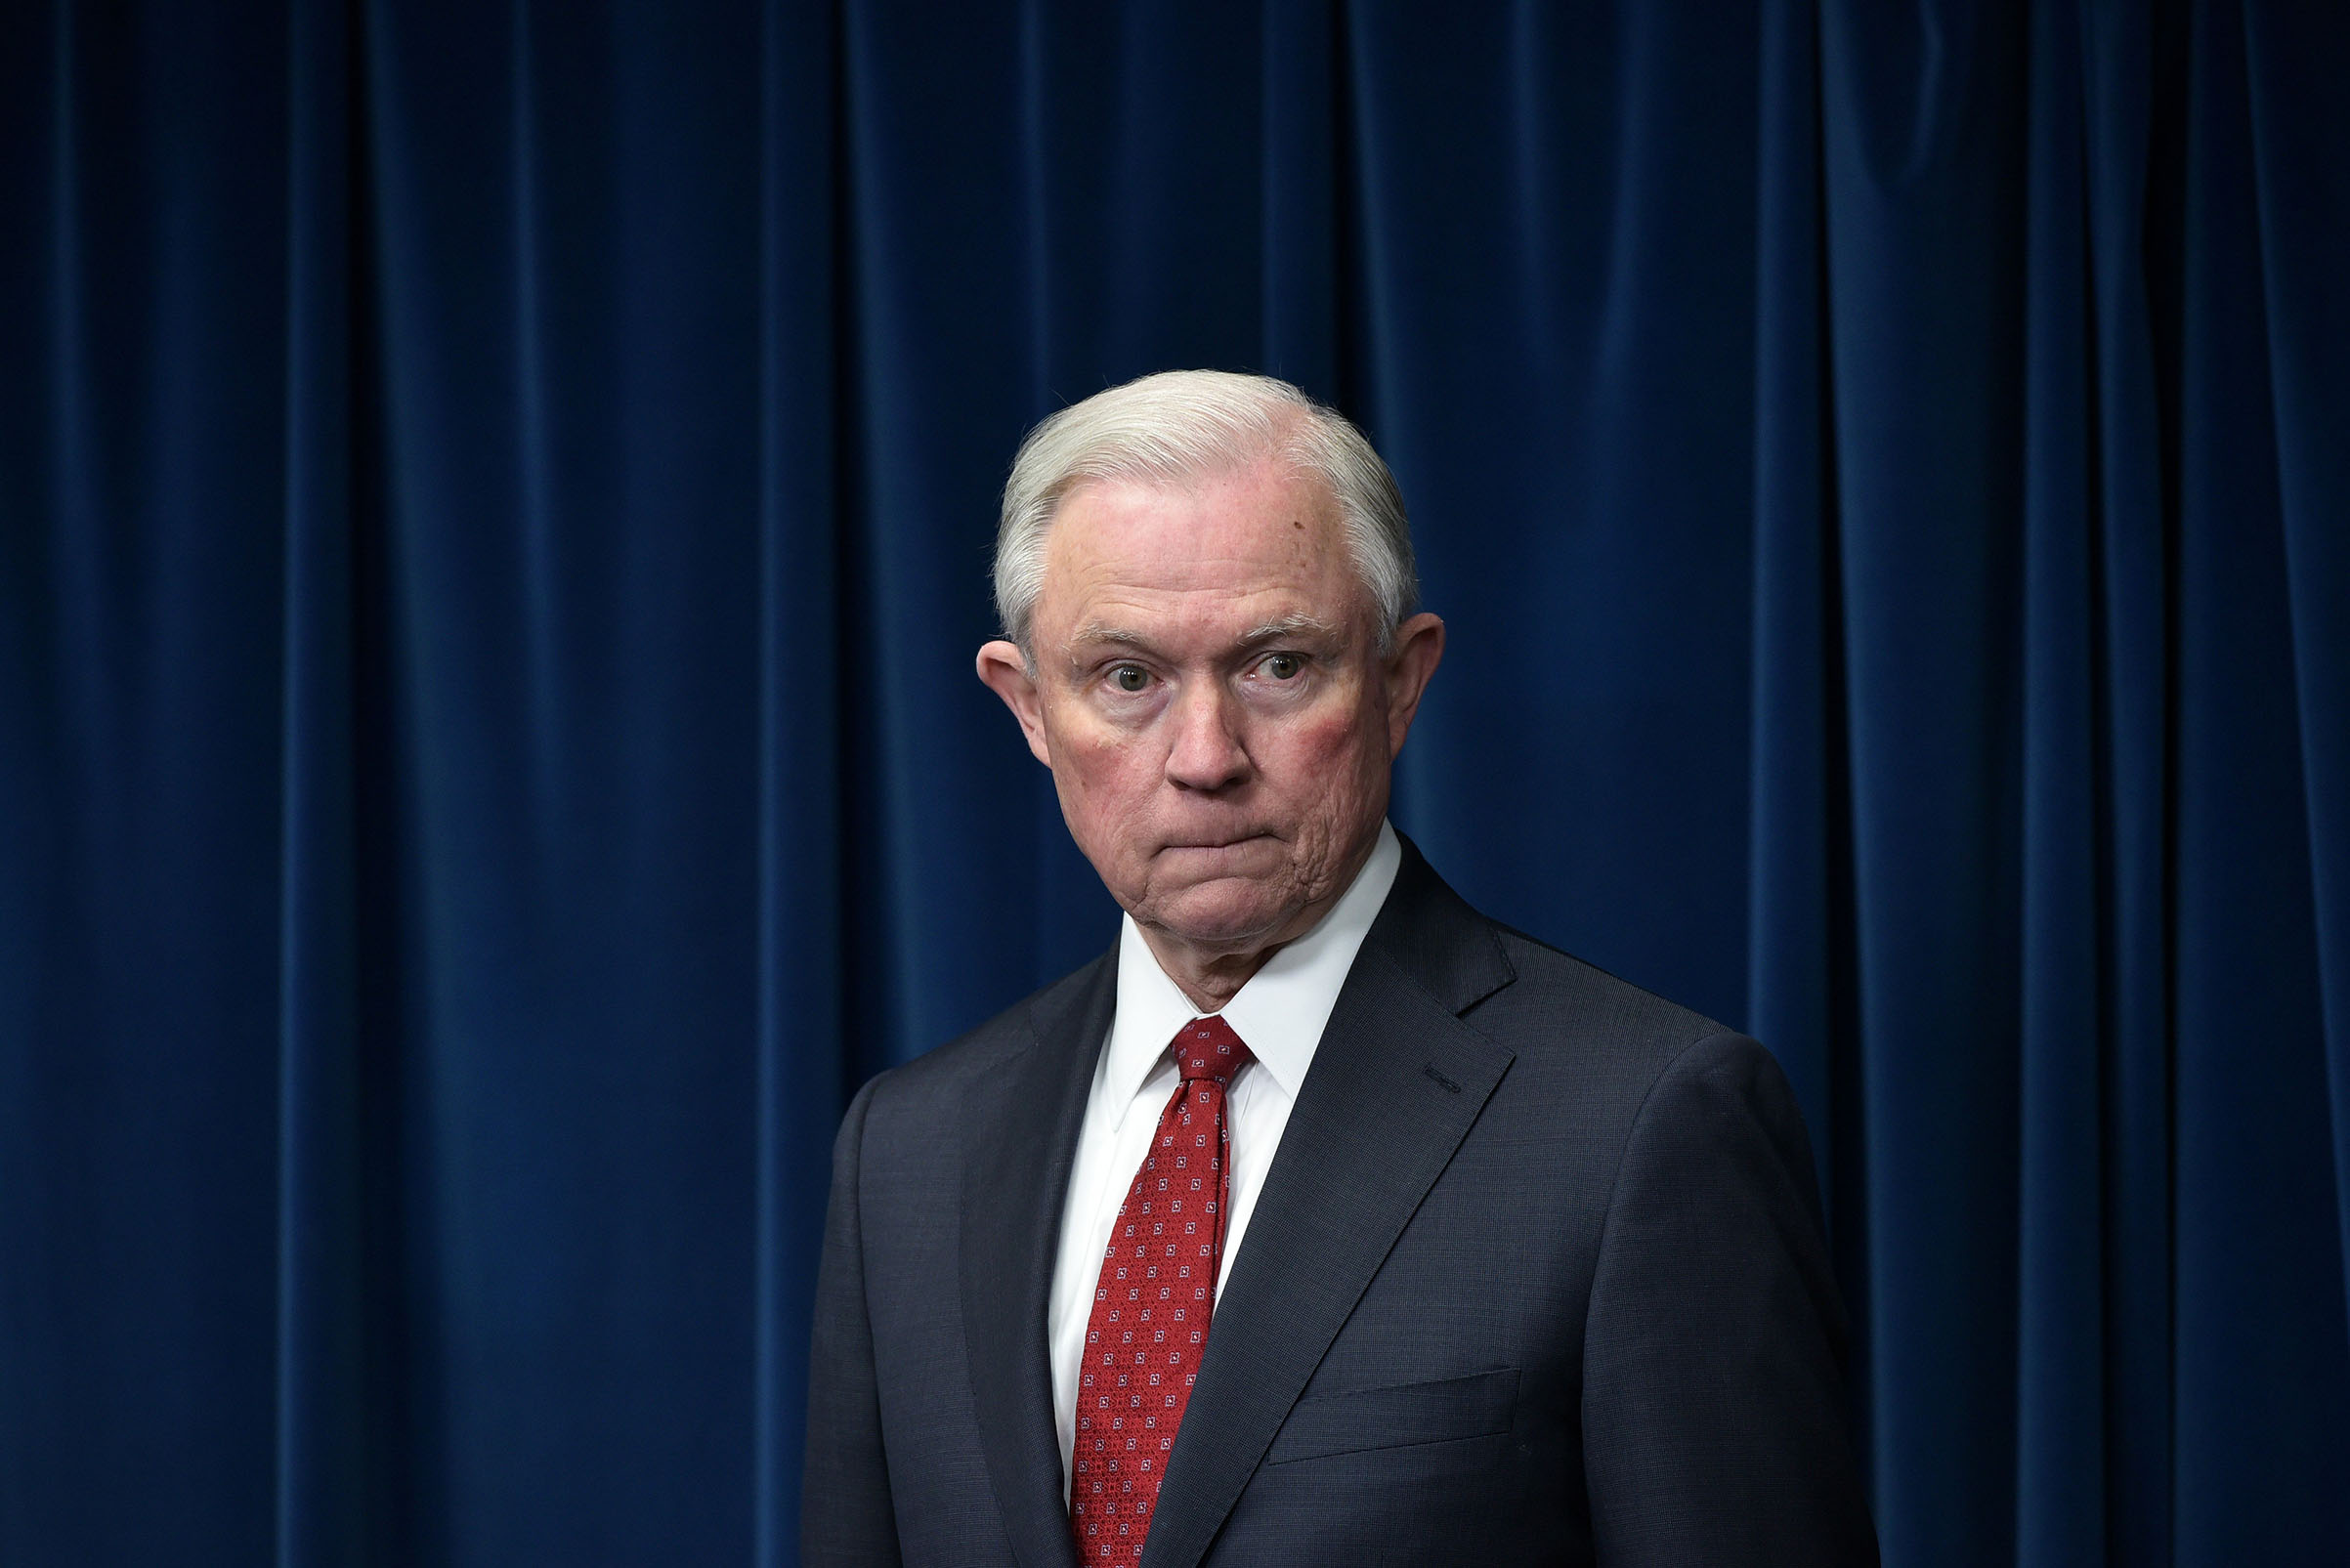 Attorney General Jeff Sessions waits for his turn to speak at the US Customs and Border Protection Press Room on March 6, 2017.